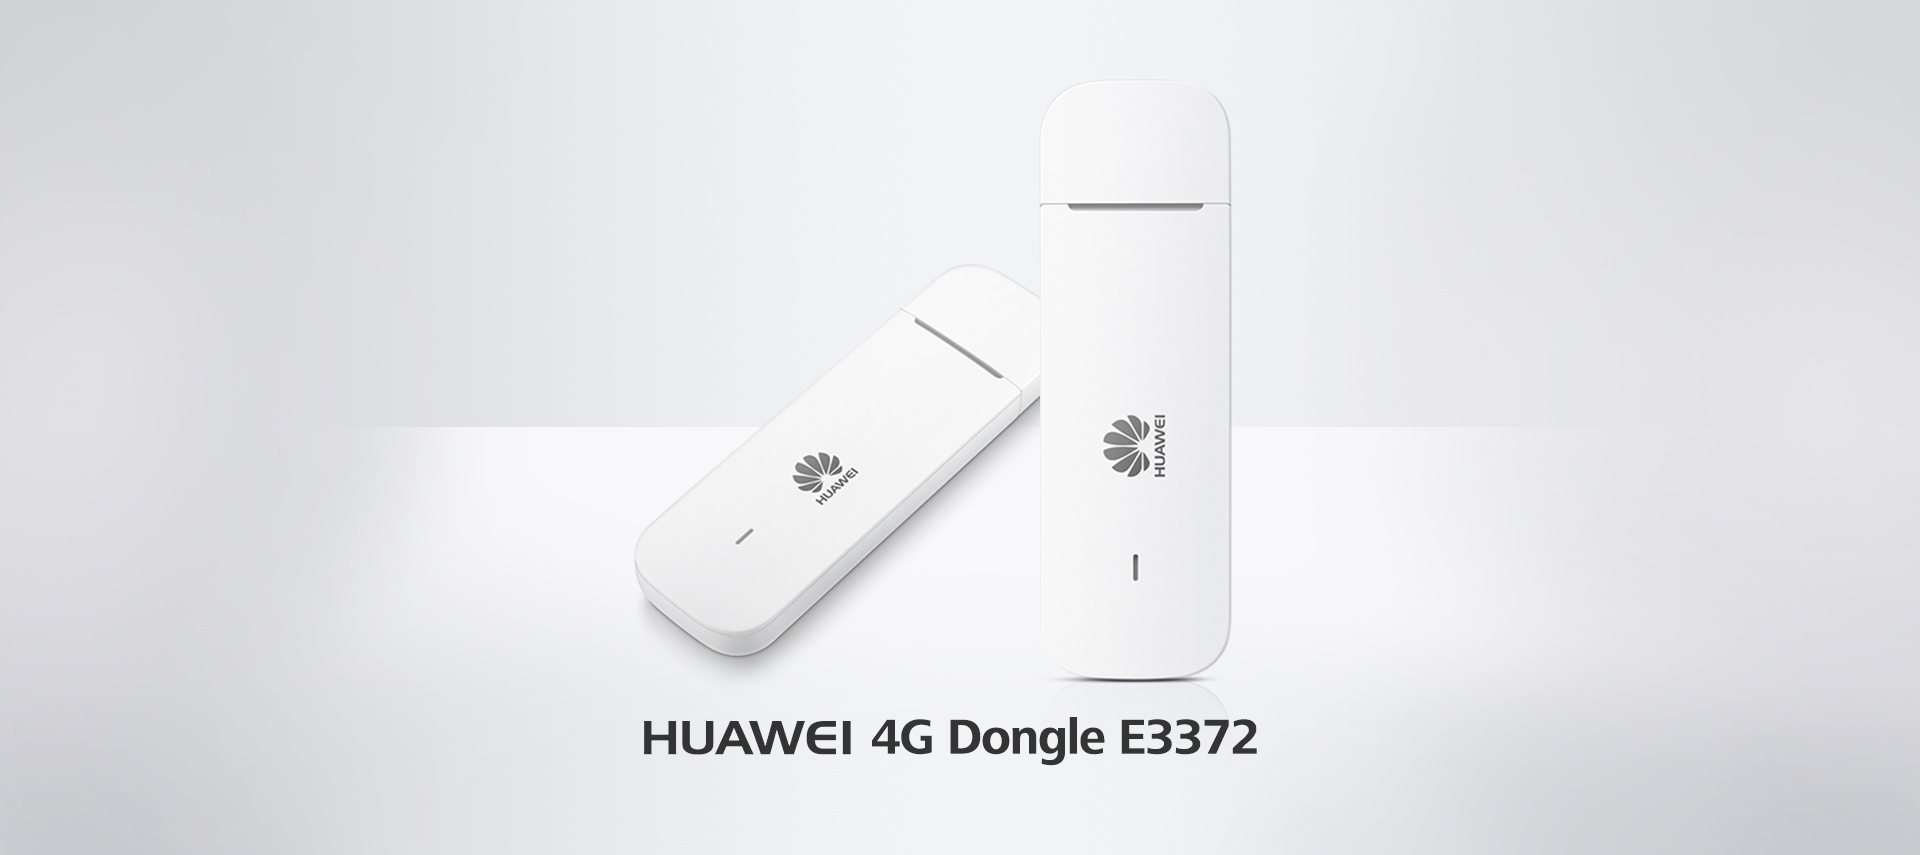 HUAWEI 4G Dongle E3372